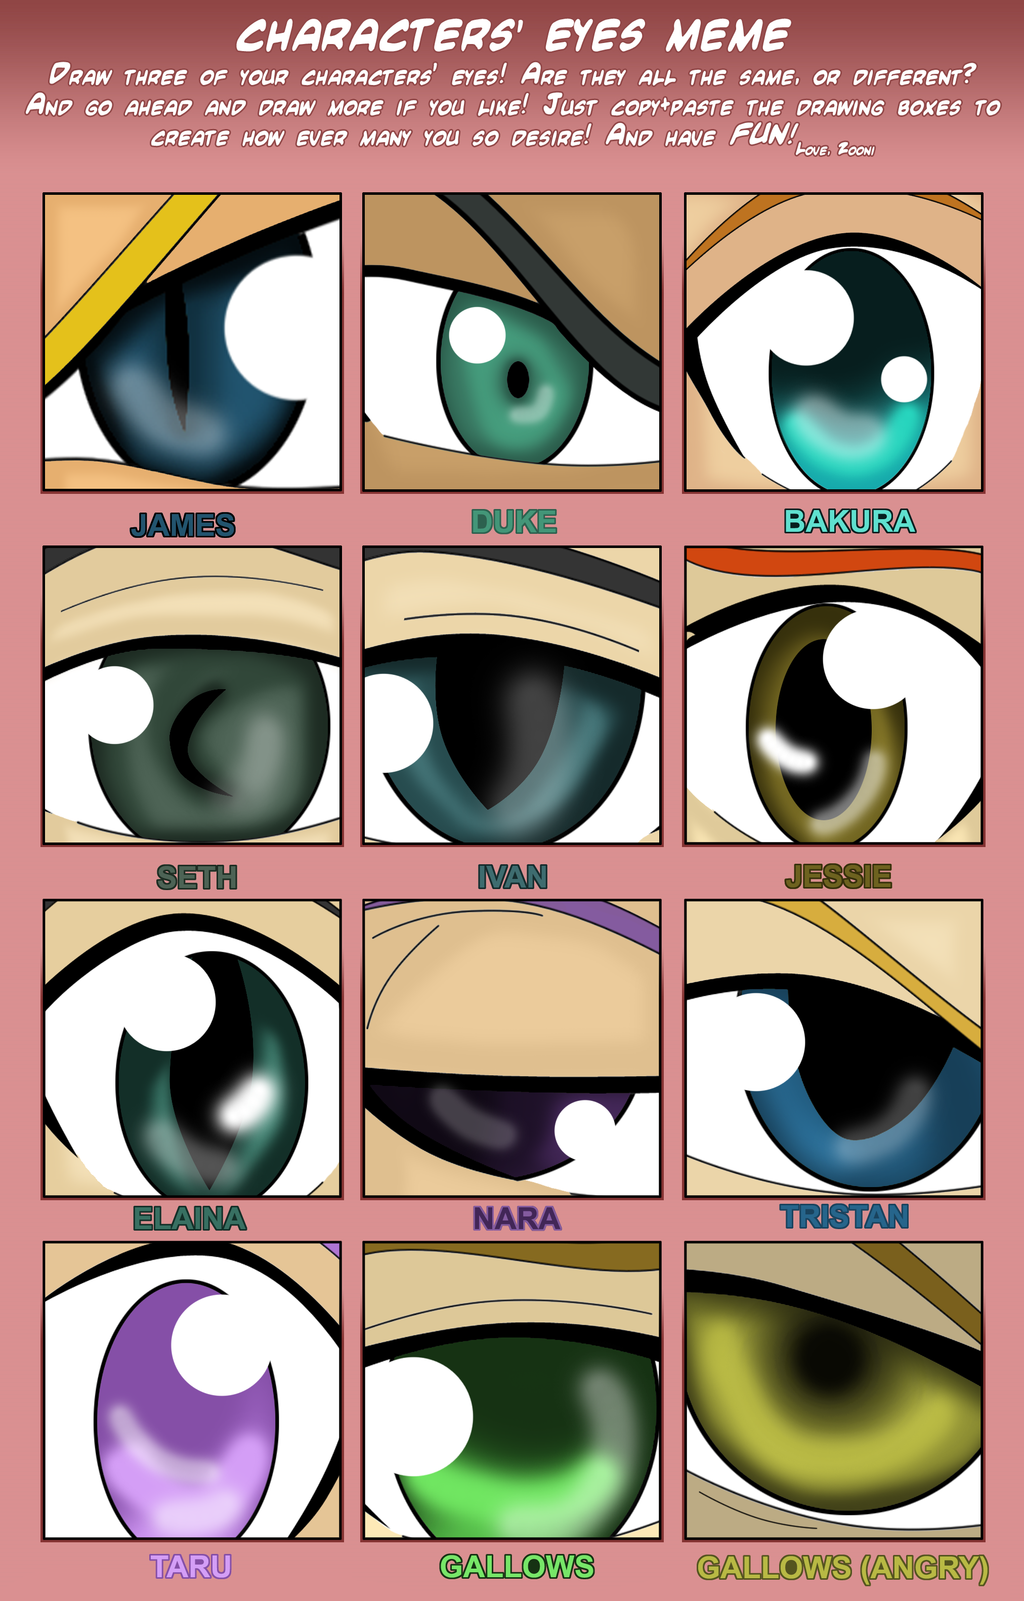 Characters Eyes Meme by Prodigies